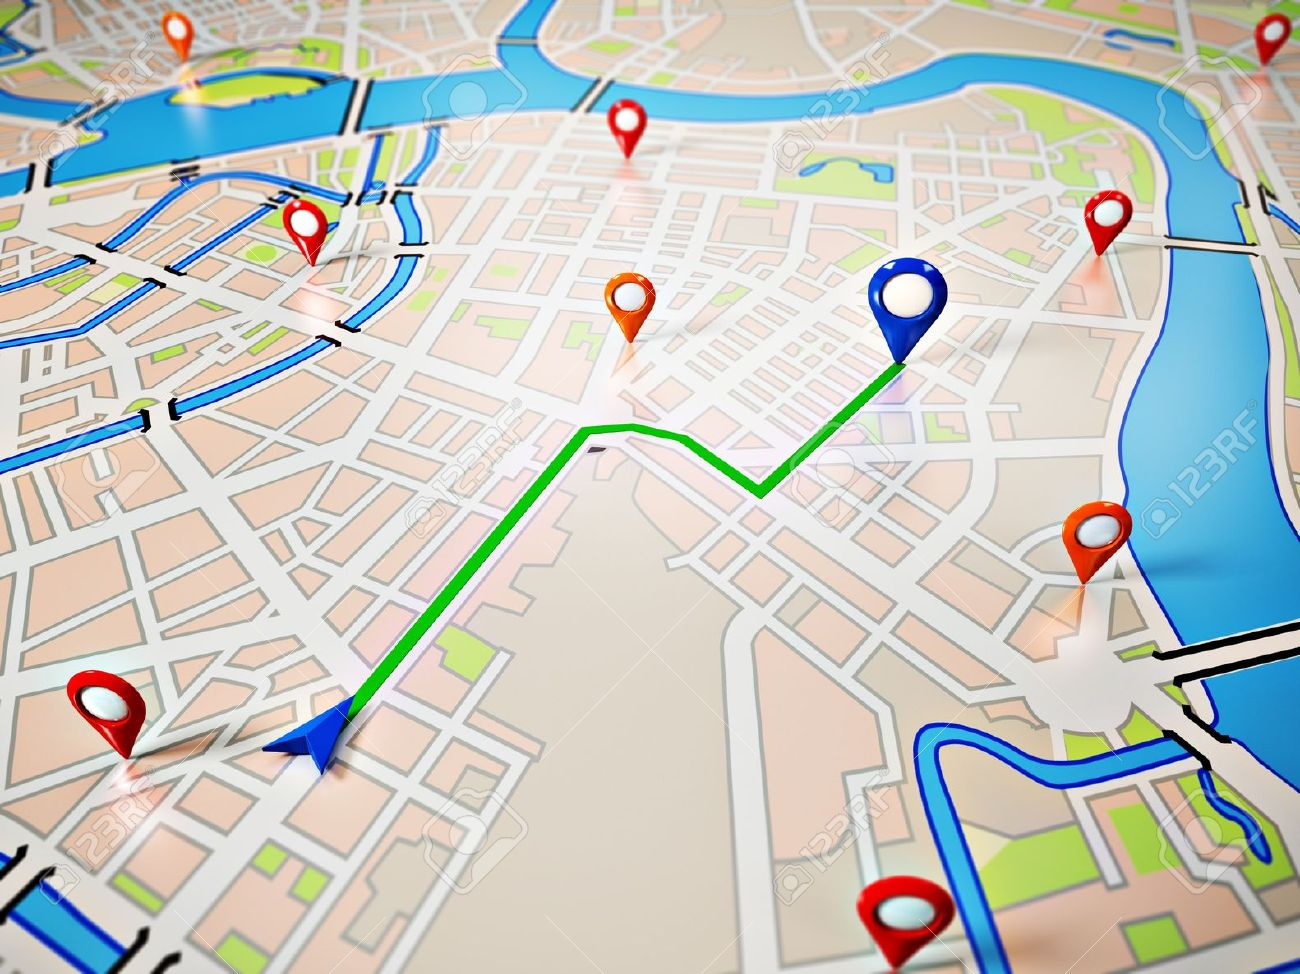 Some other attributes of FreePhoneSpy tracking application